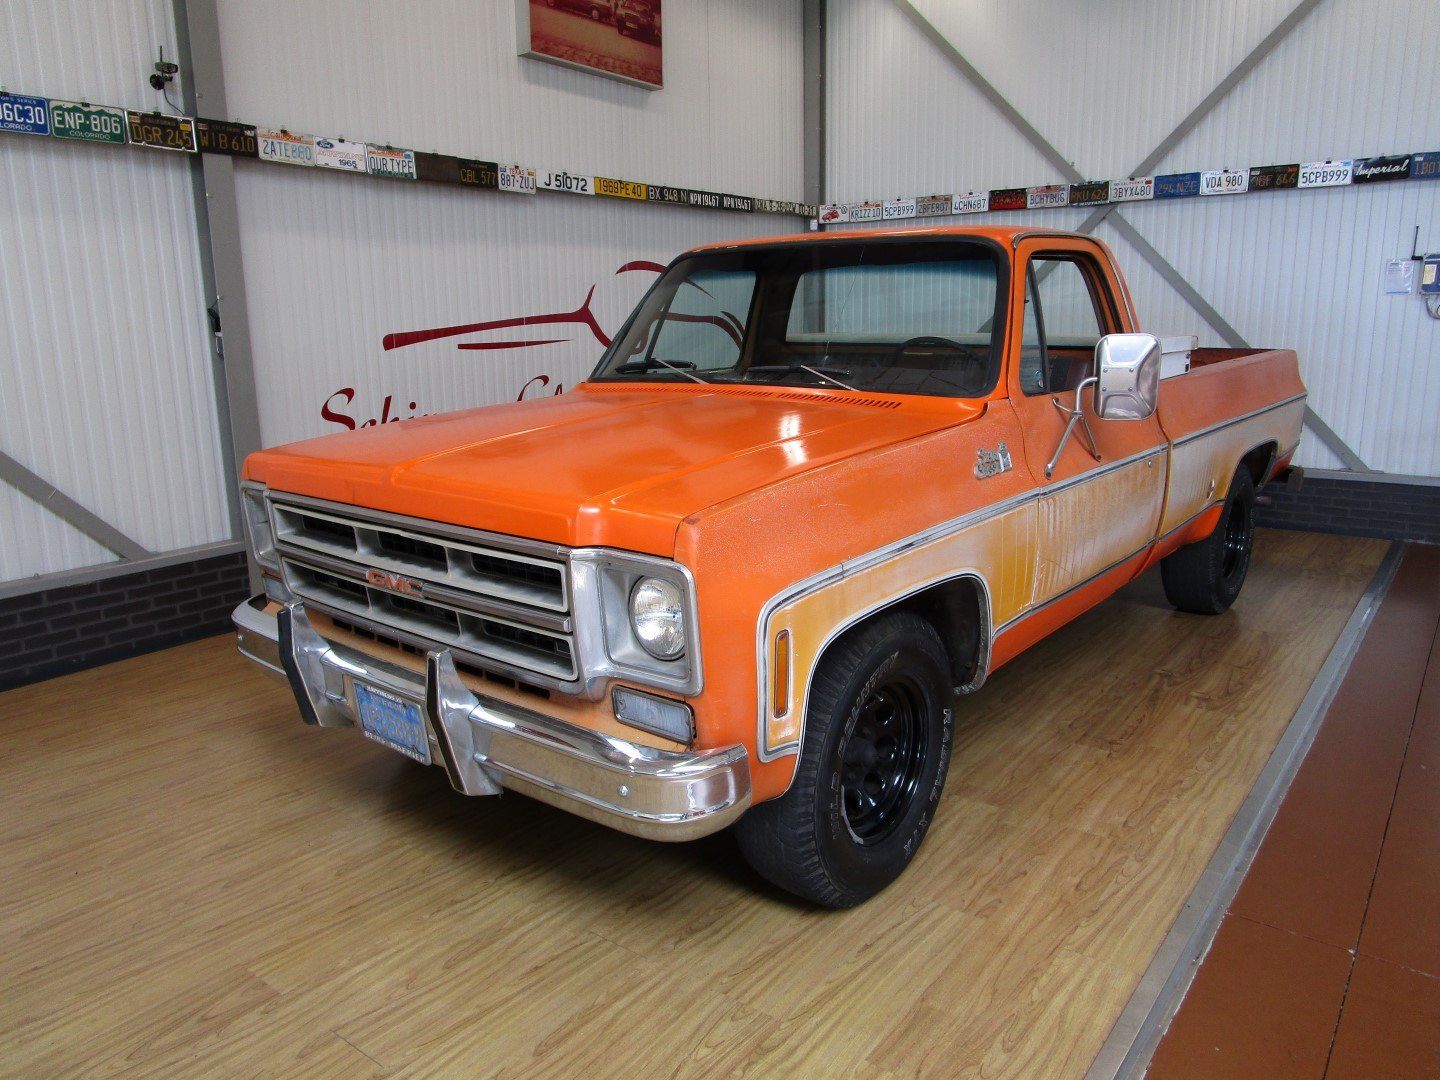 1976 GMC 15 Sierra Classic 350CU V8 Longbed Pick Up For Sale (picture 1 of 6)